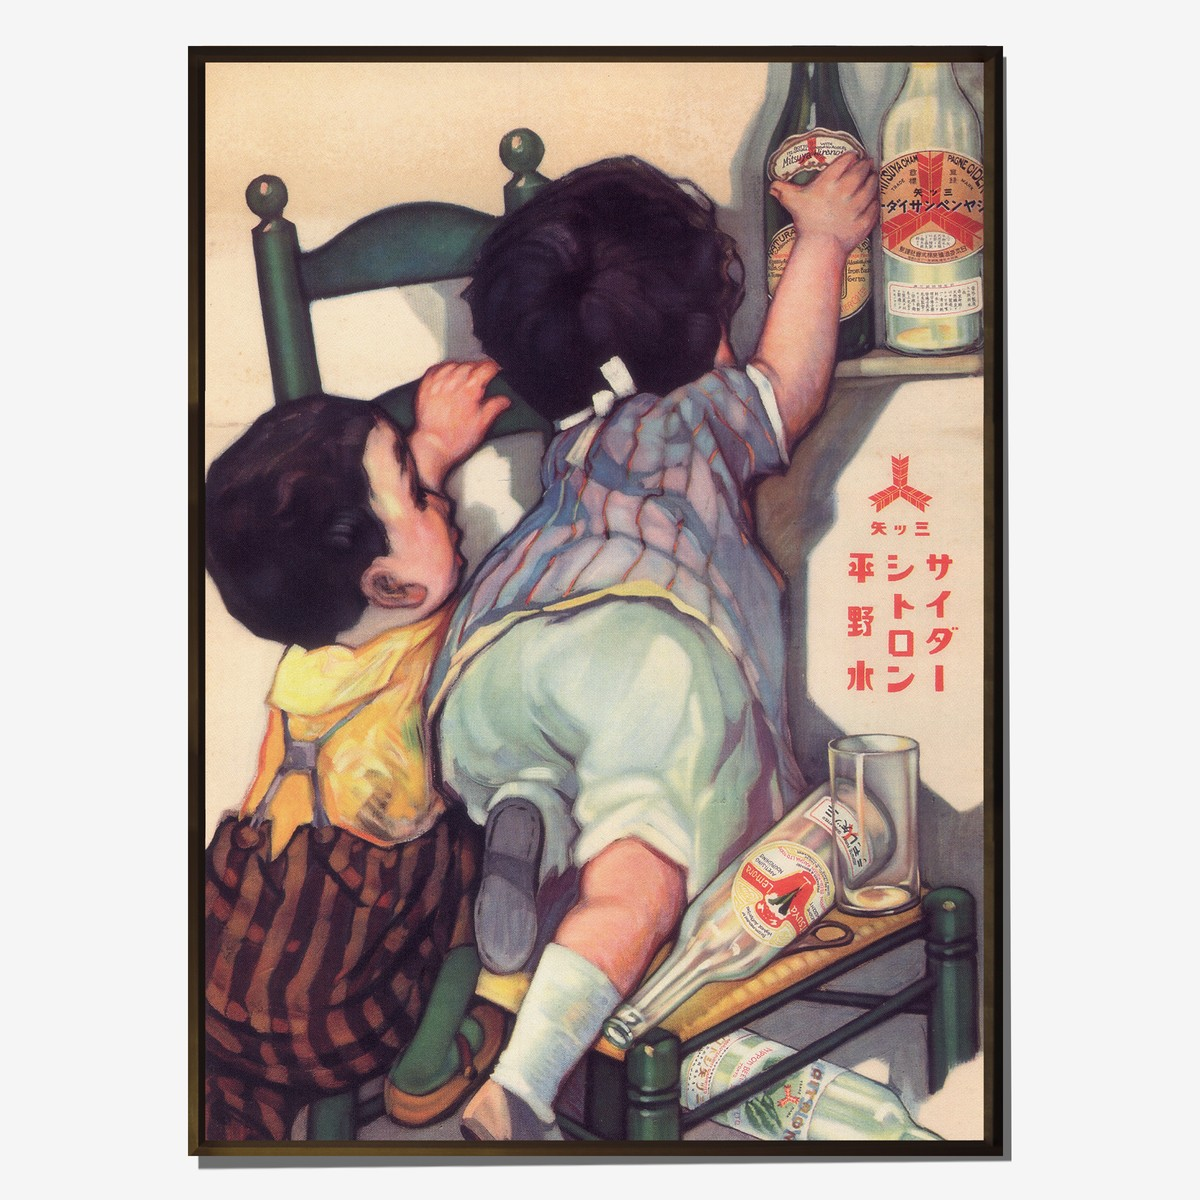 Photo of Mitsuya Cider Vintage Advertising Poster